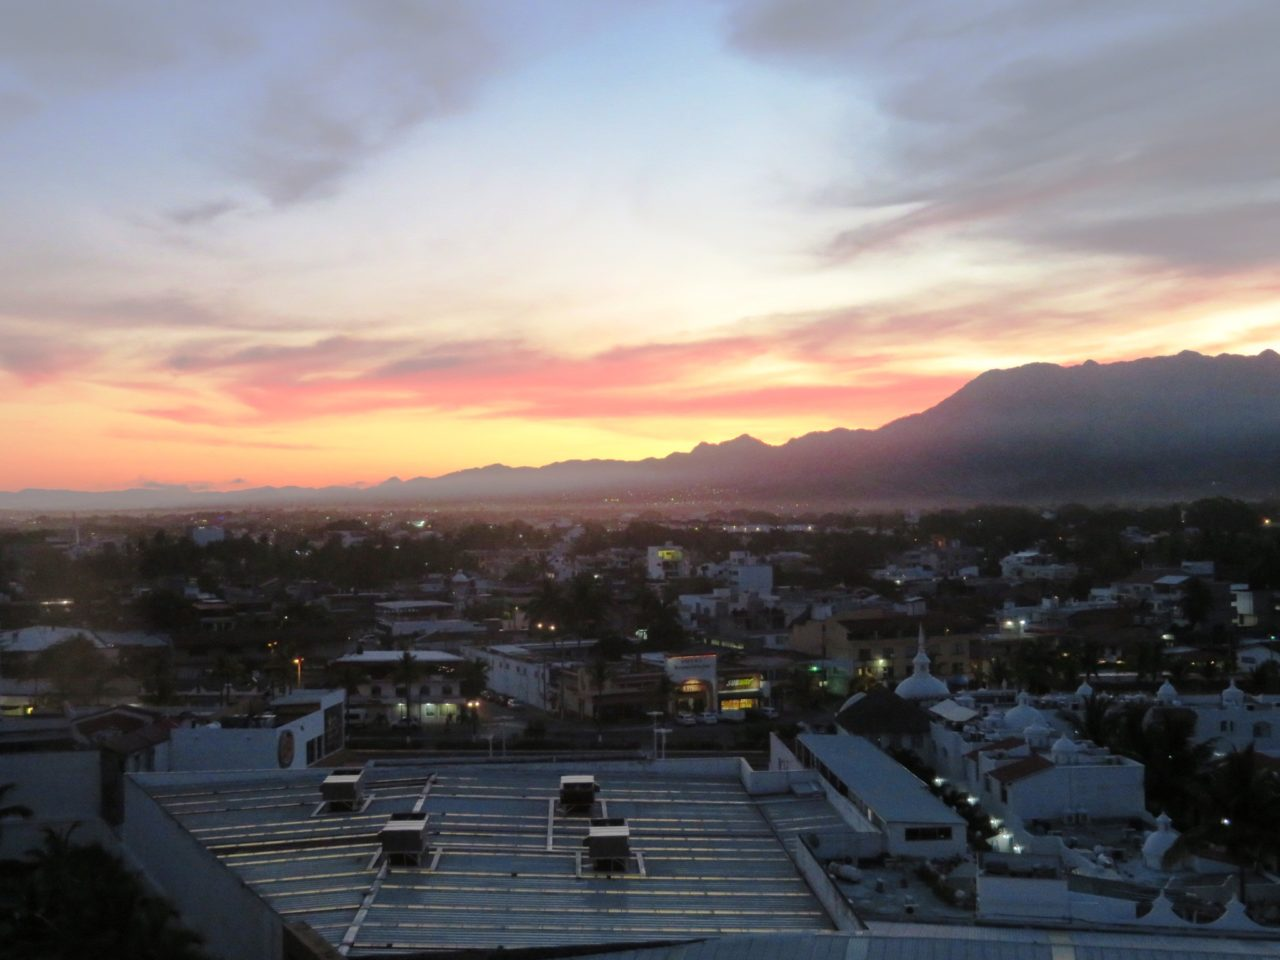 Sun rising behind the Sierra Madre Mountains